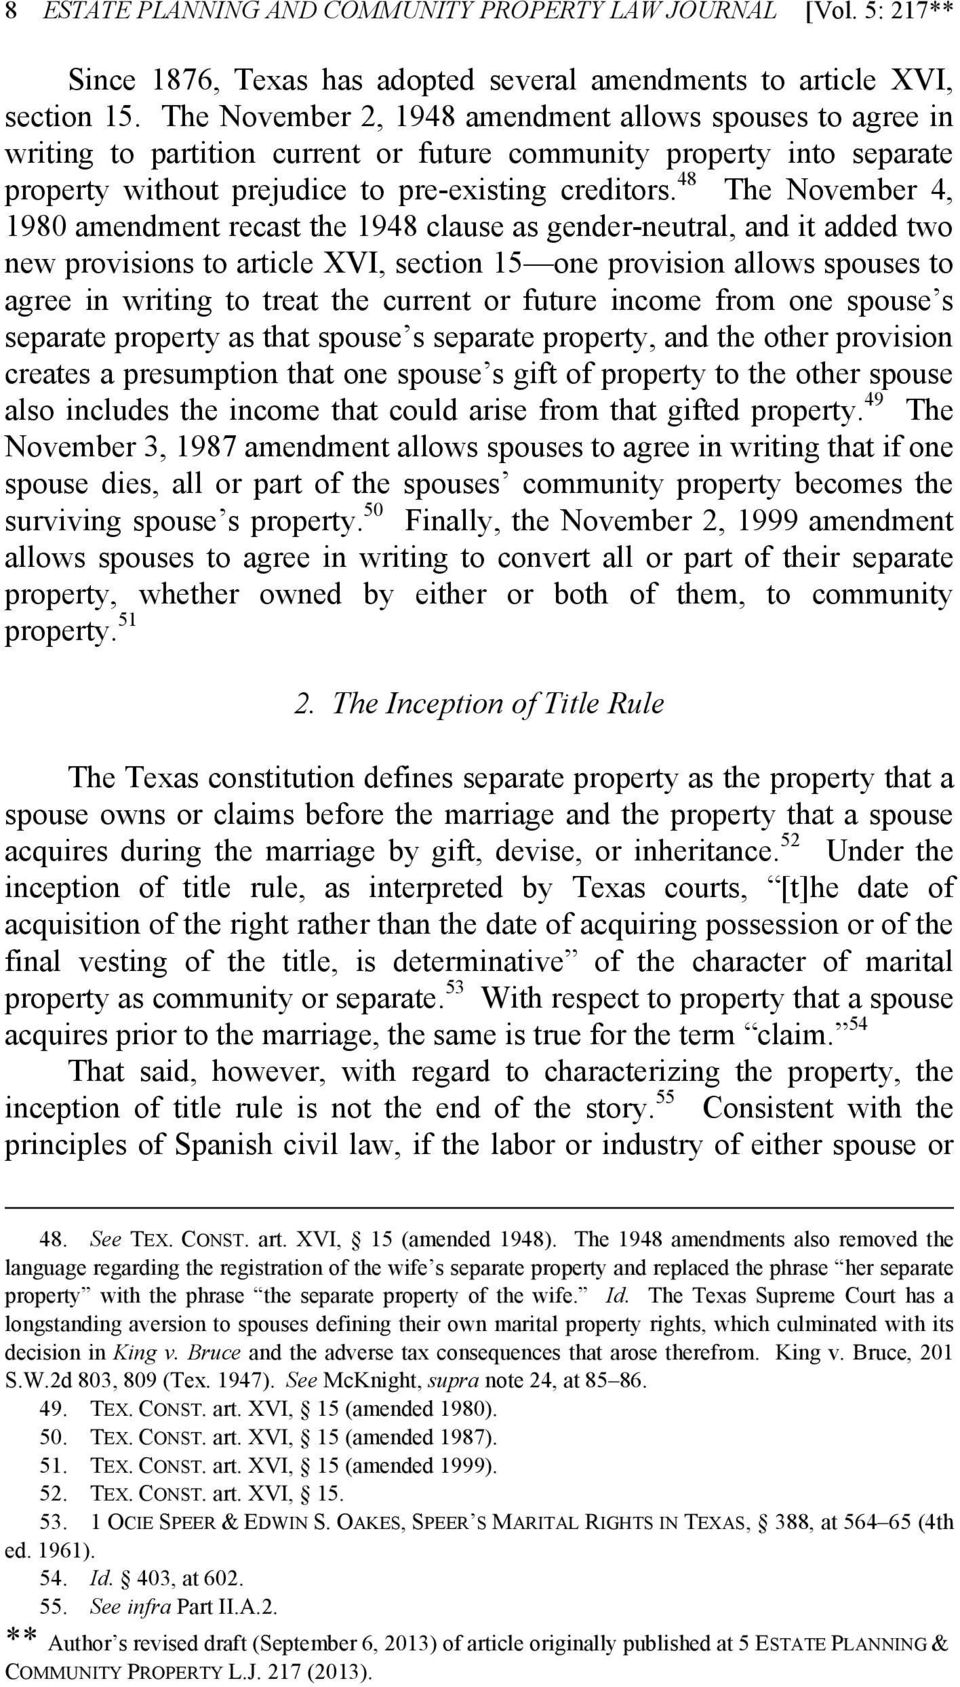 48 The November 4, 1980 amendment recast the 1948 clause as gender-neutral, and it added two new provisions to article XVI, section 15 one provision allows spouses to agree in writing to treat the